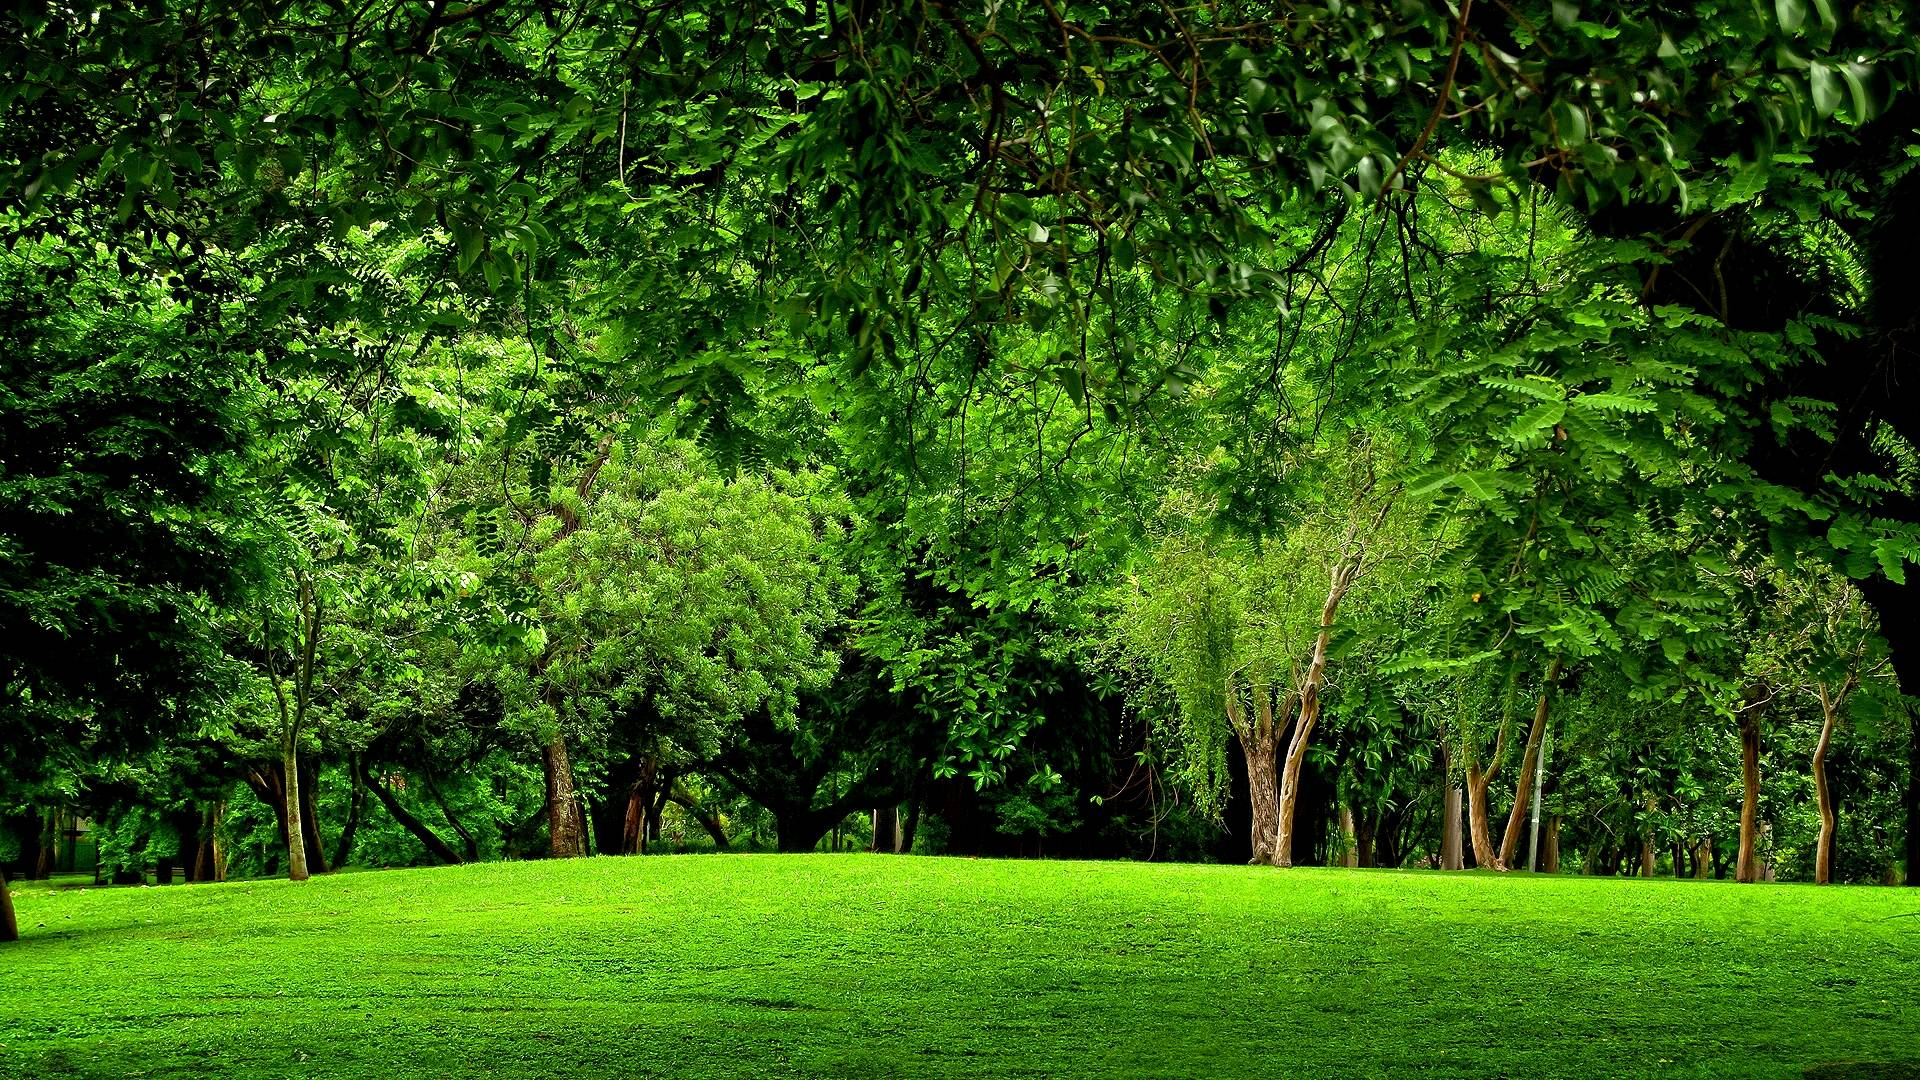 Green Forest Images Wallpaper